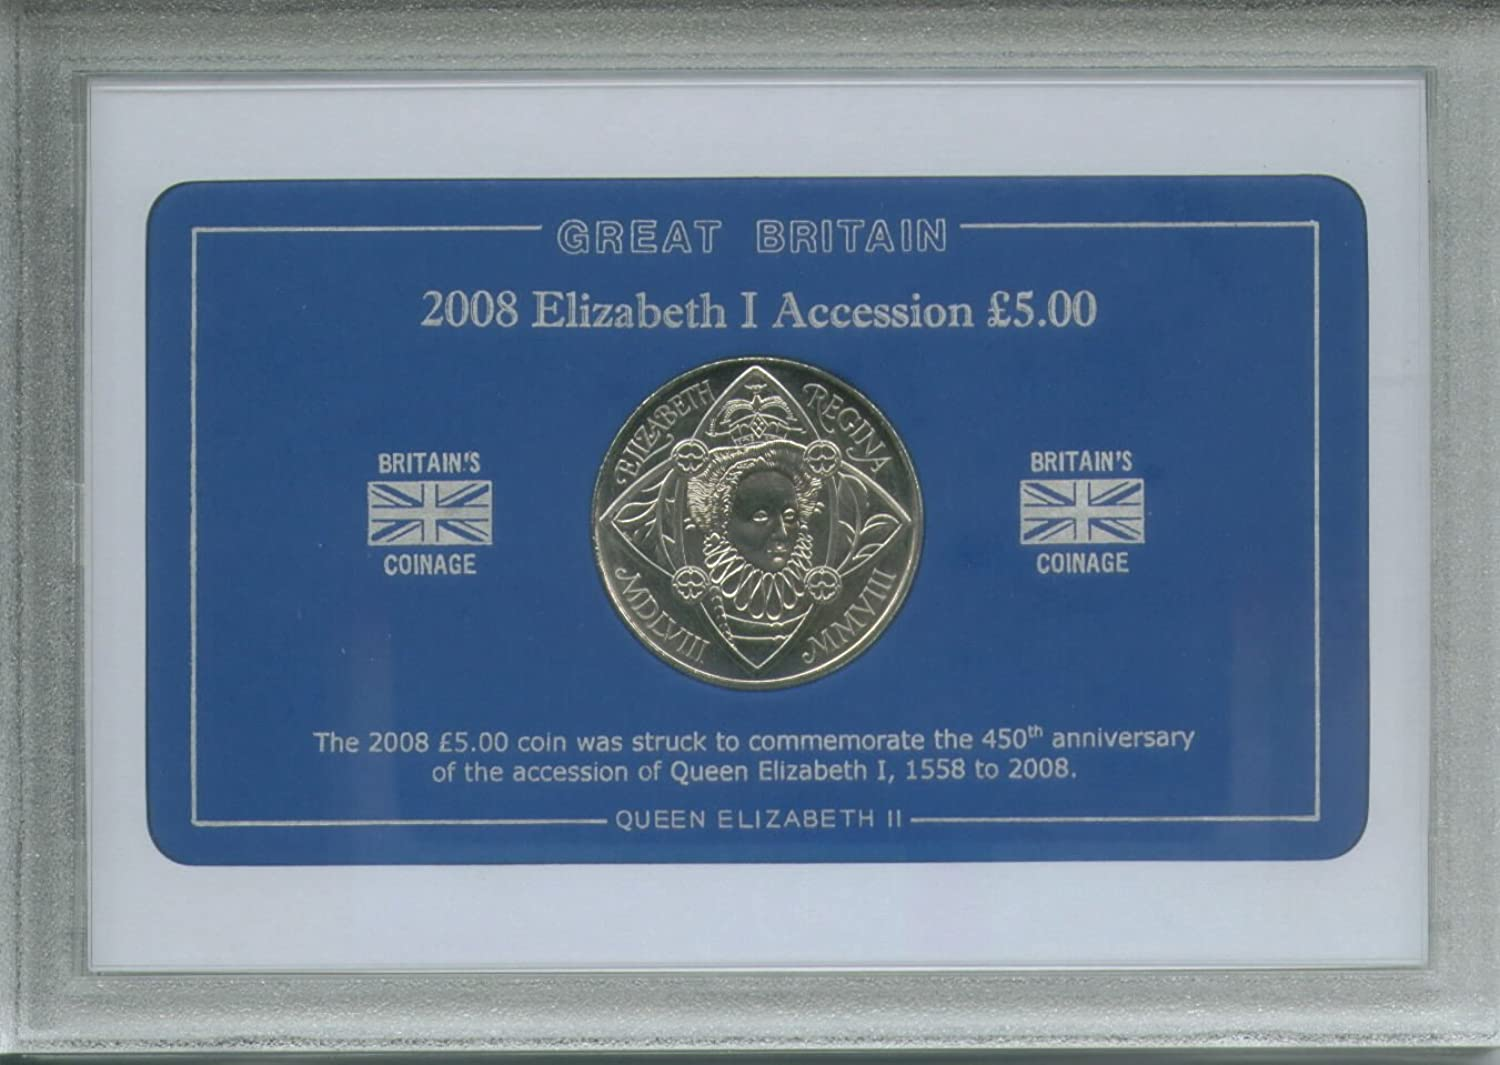 2008 450th Anniversary of the Accession of Queen Elizabeth I 1558 to 2008 Commemorative £5 Coin Collector Gift Set